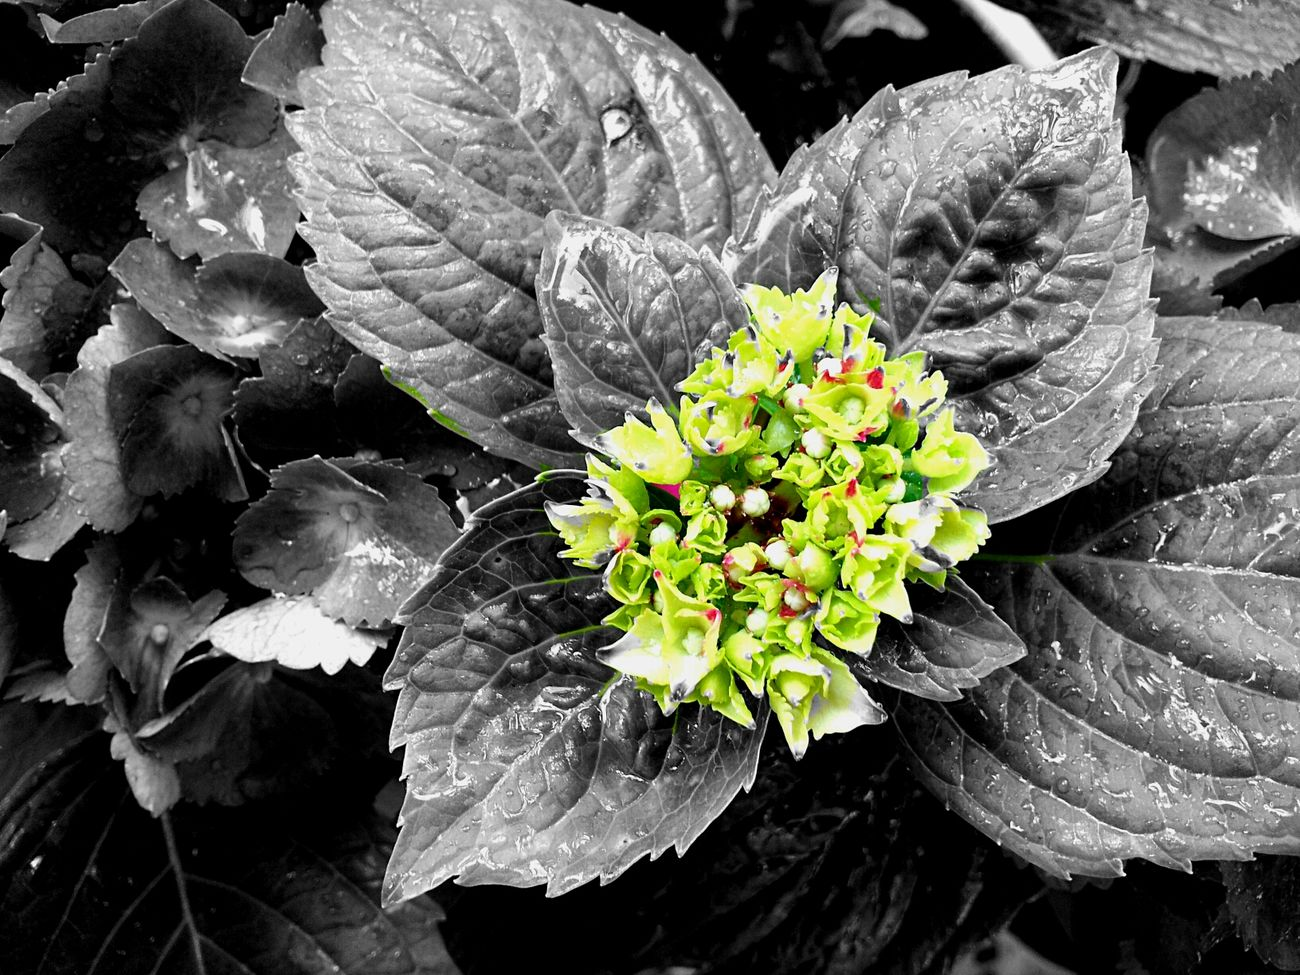 Flowers Blackandwhite Photography Check This Out